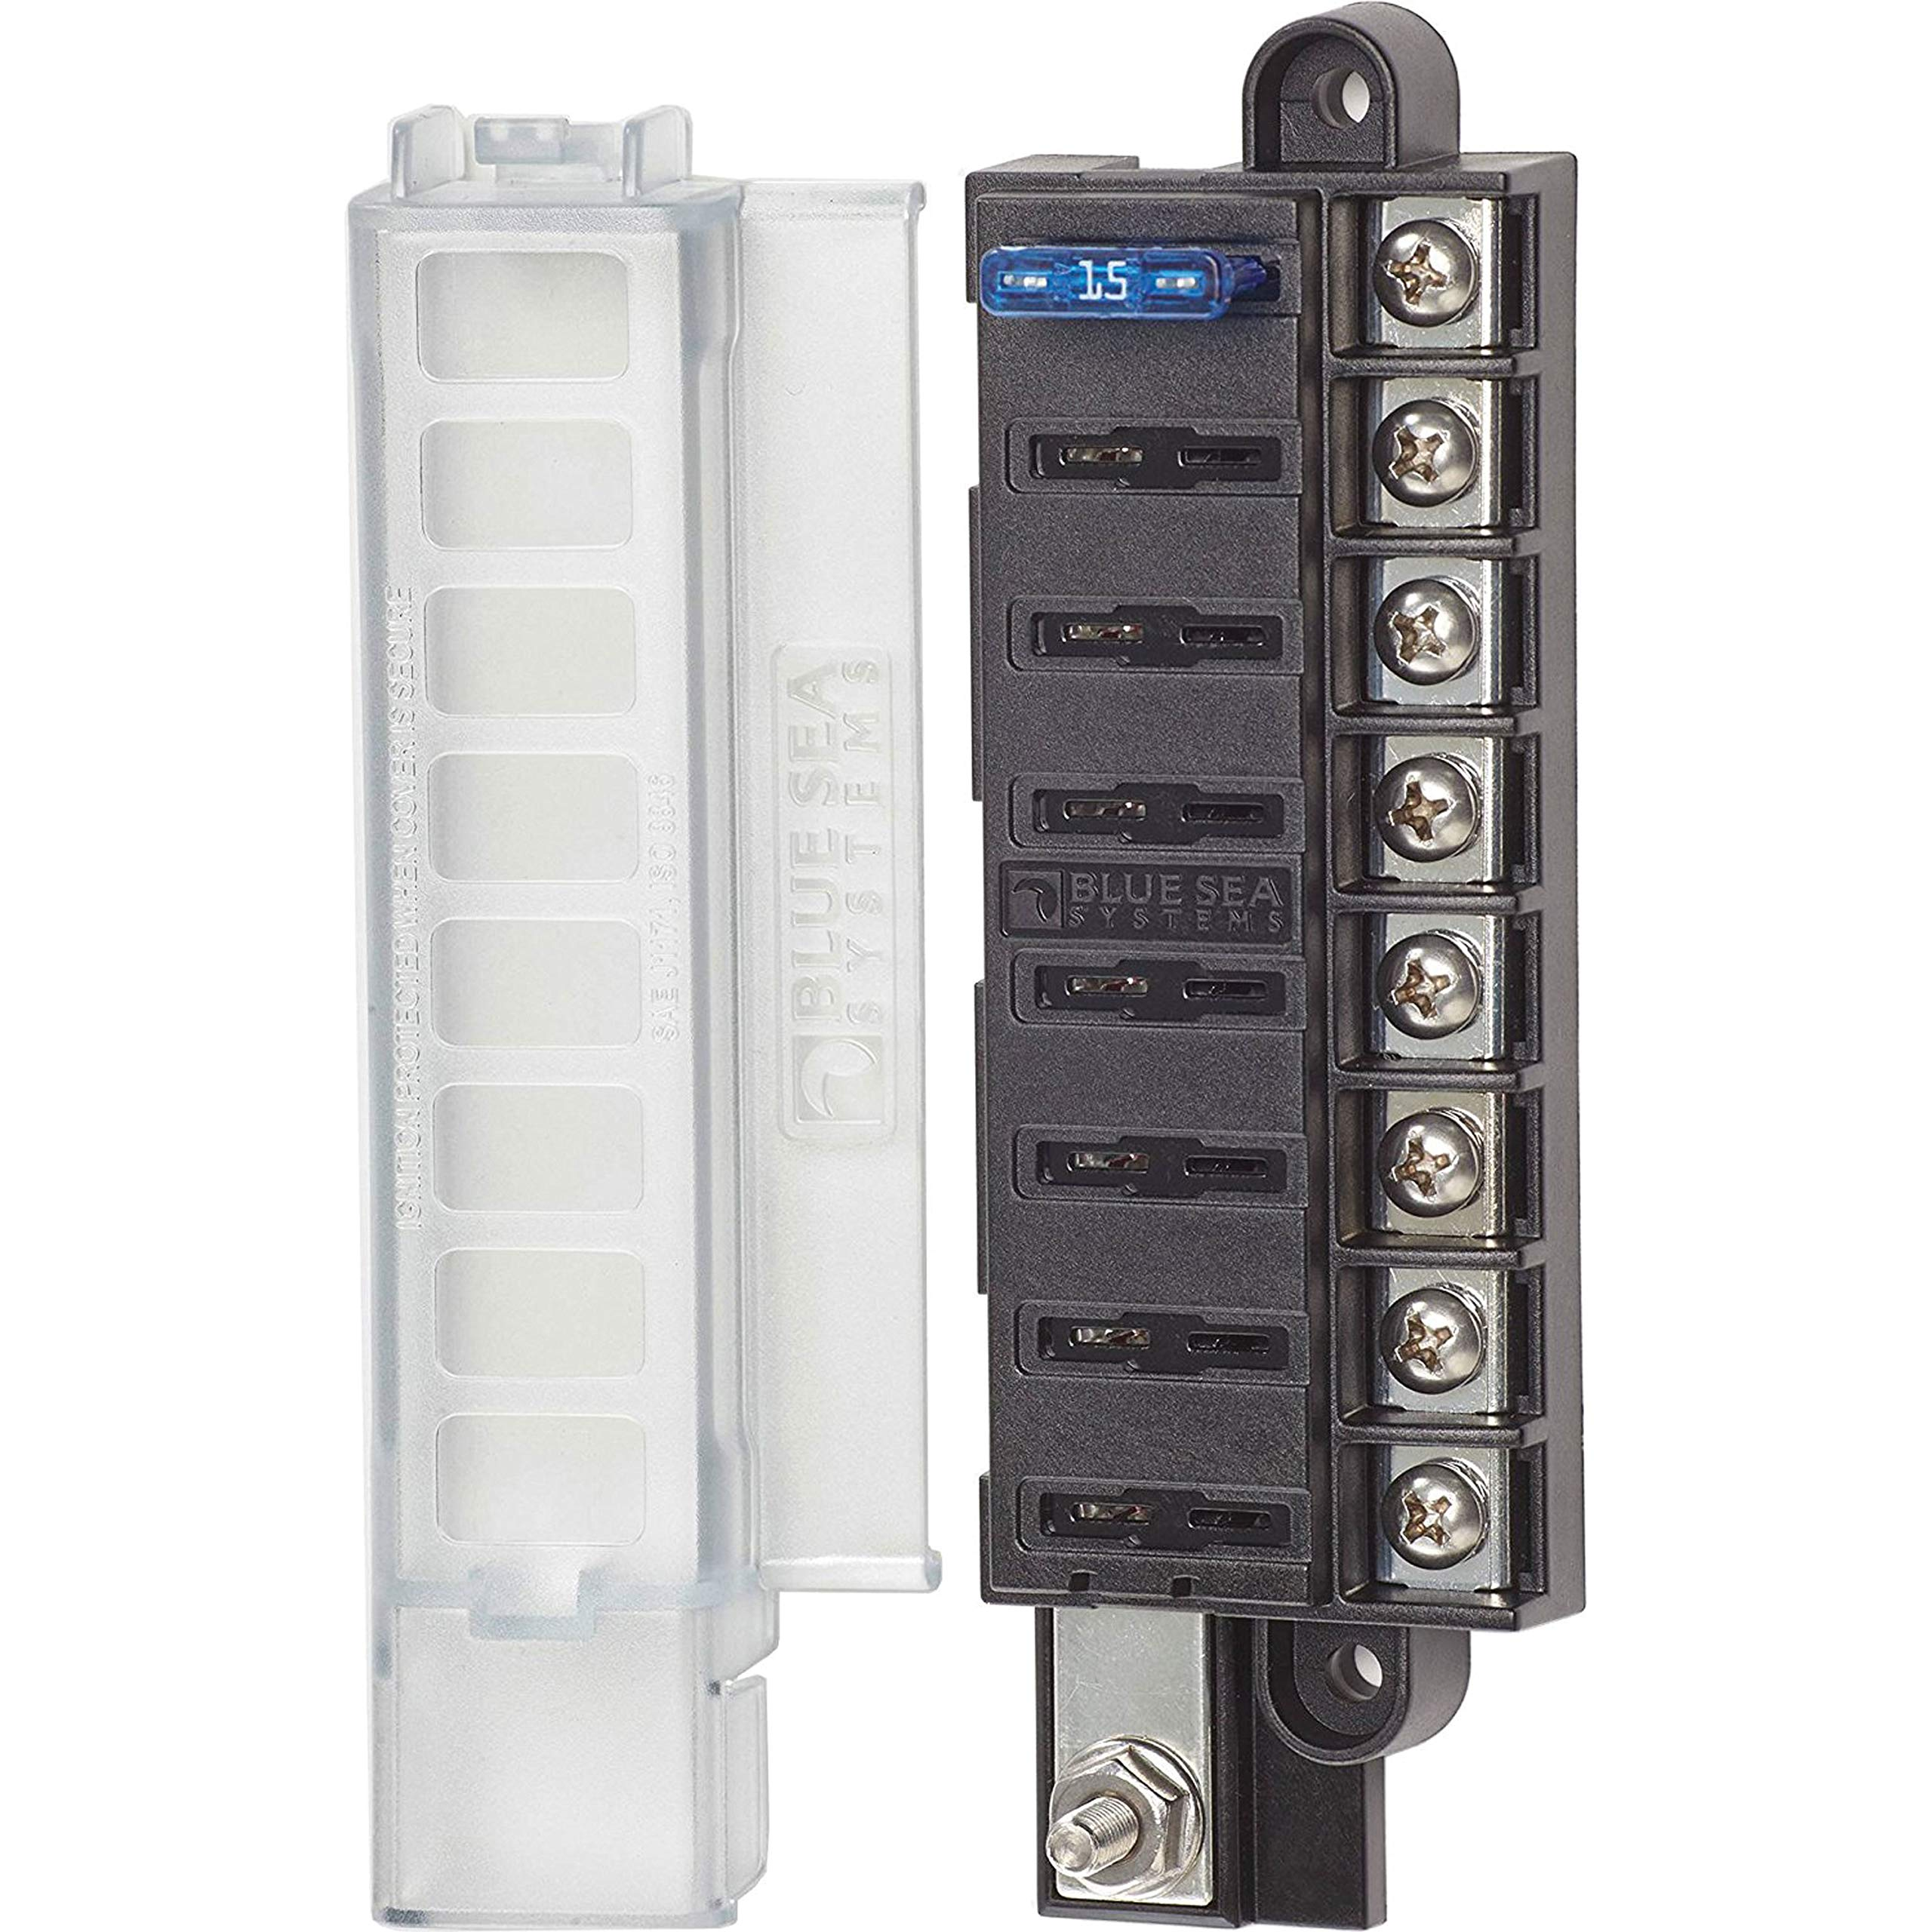 Blue Sea Systems 5046 Fuse Block St Blade Mini 8 Cir- by Blue Sea Systems